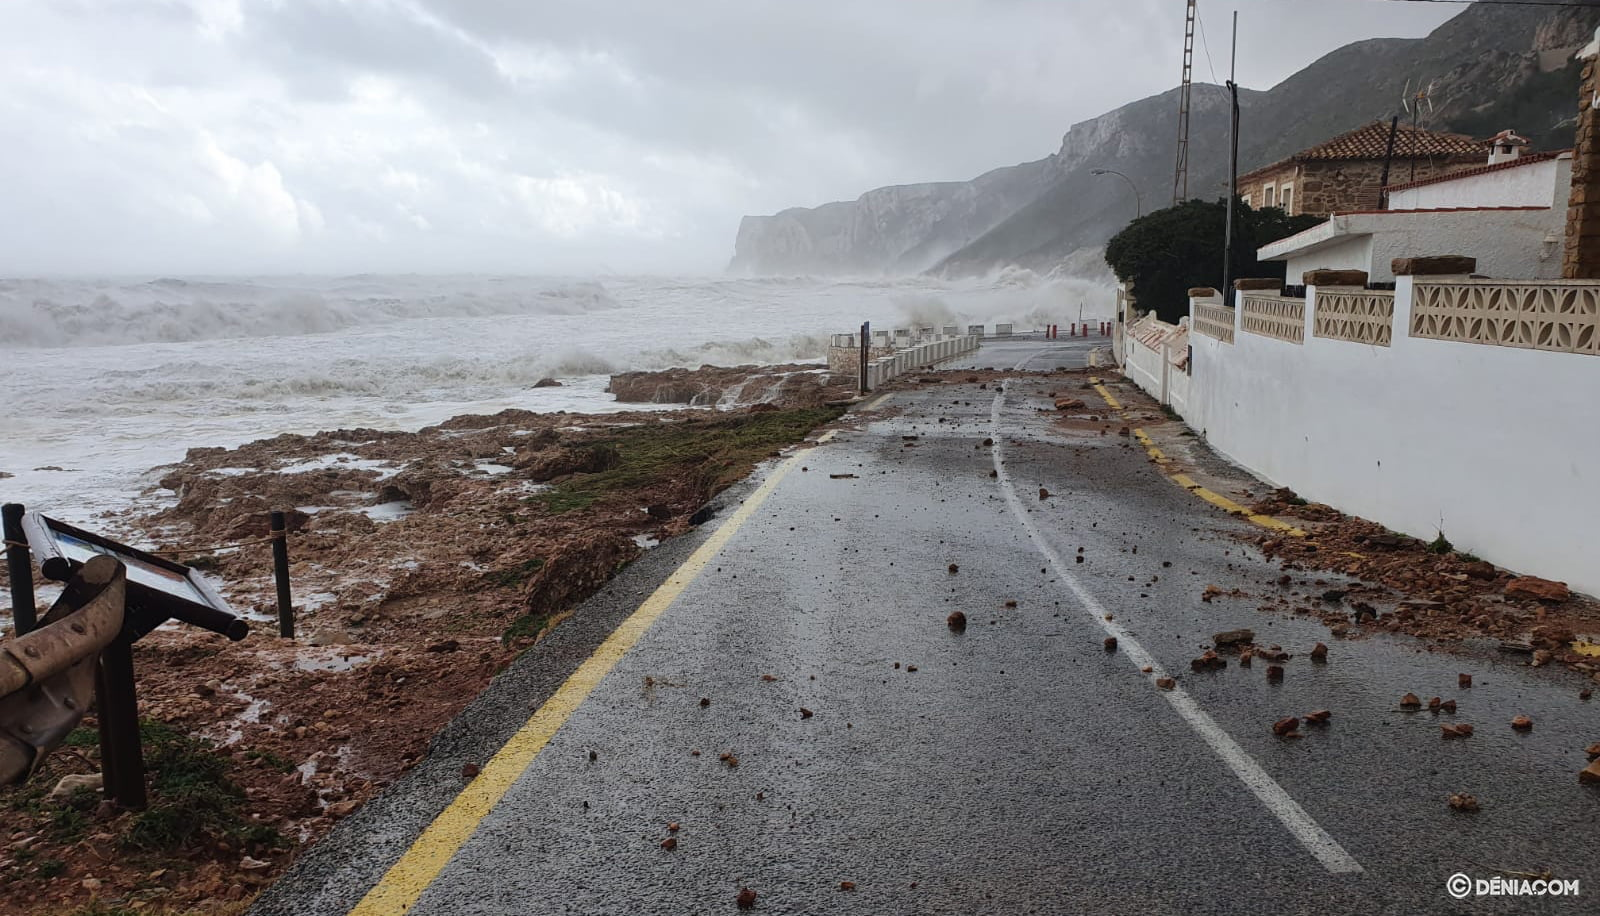 Rocks invade the road